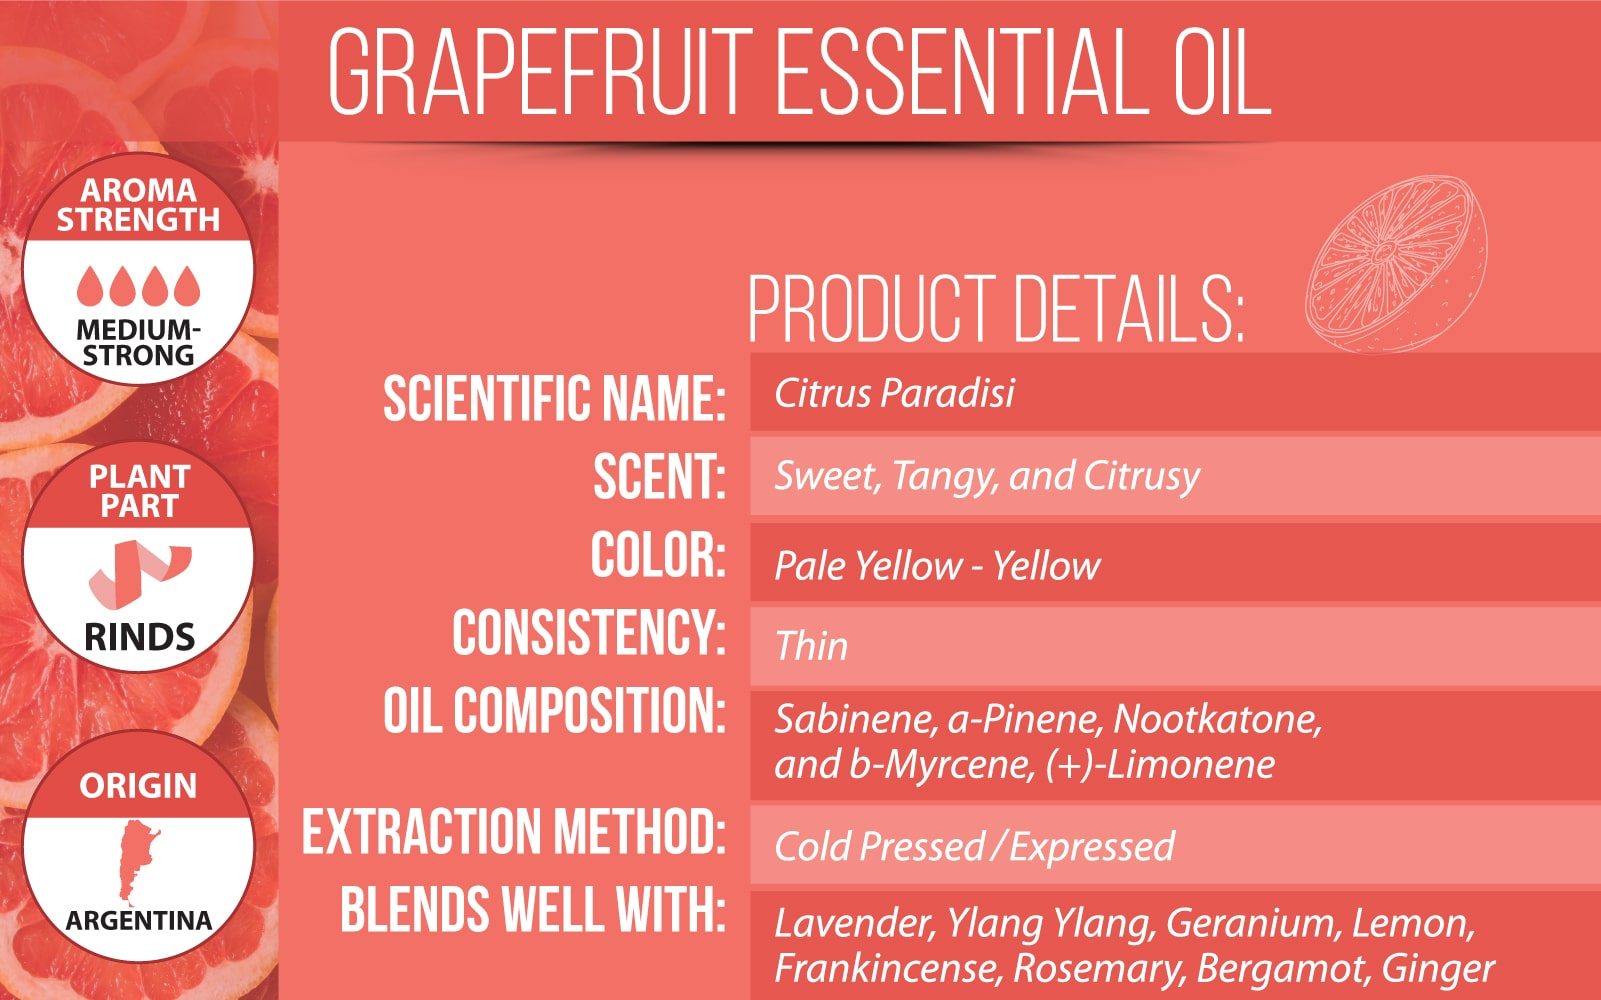 Grapefruit Essential Oil Product Details